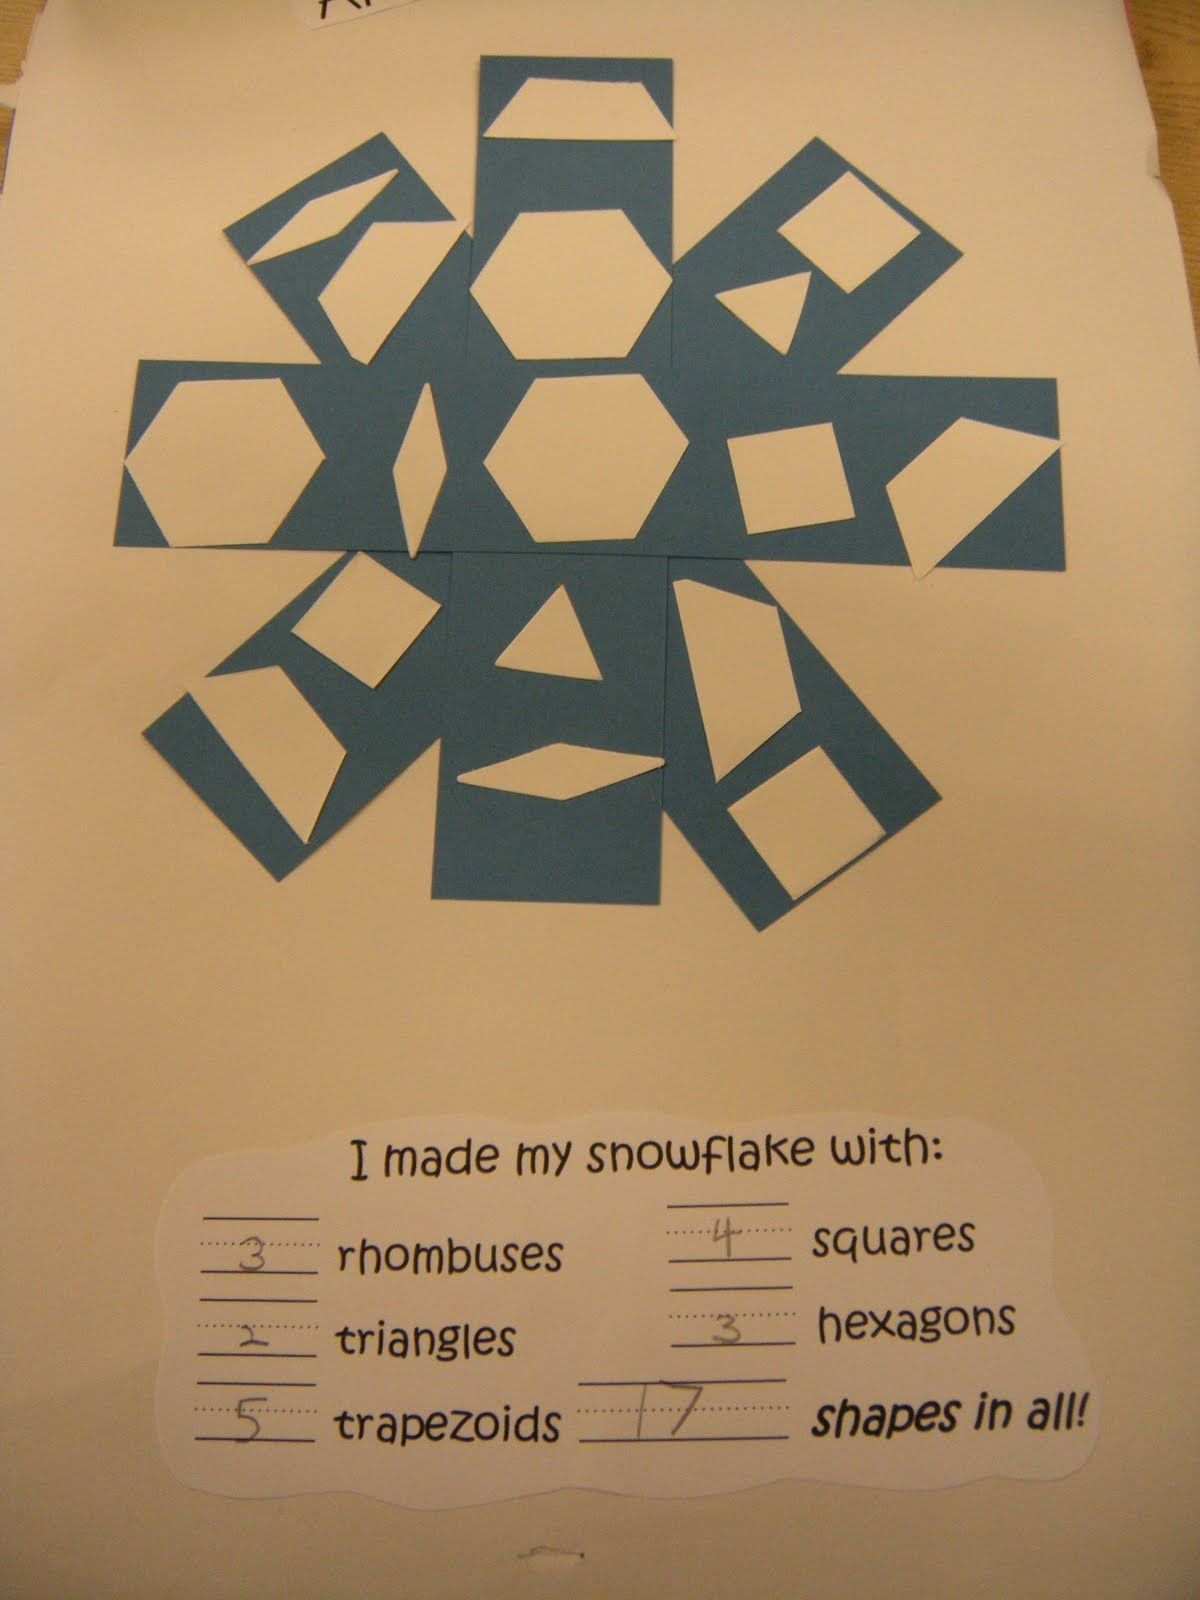 Snowflake Made Up Of Geometrical Shapes Could Also Be